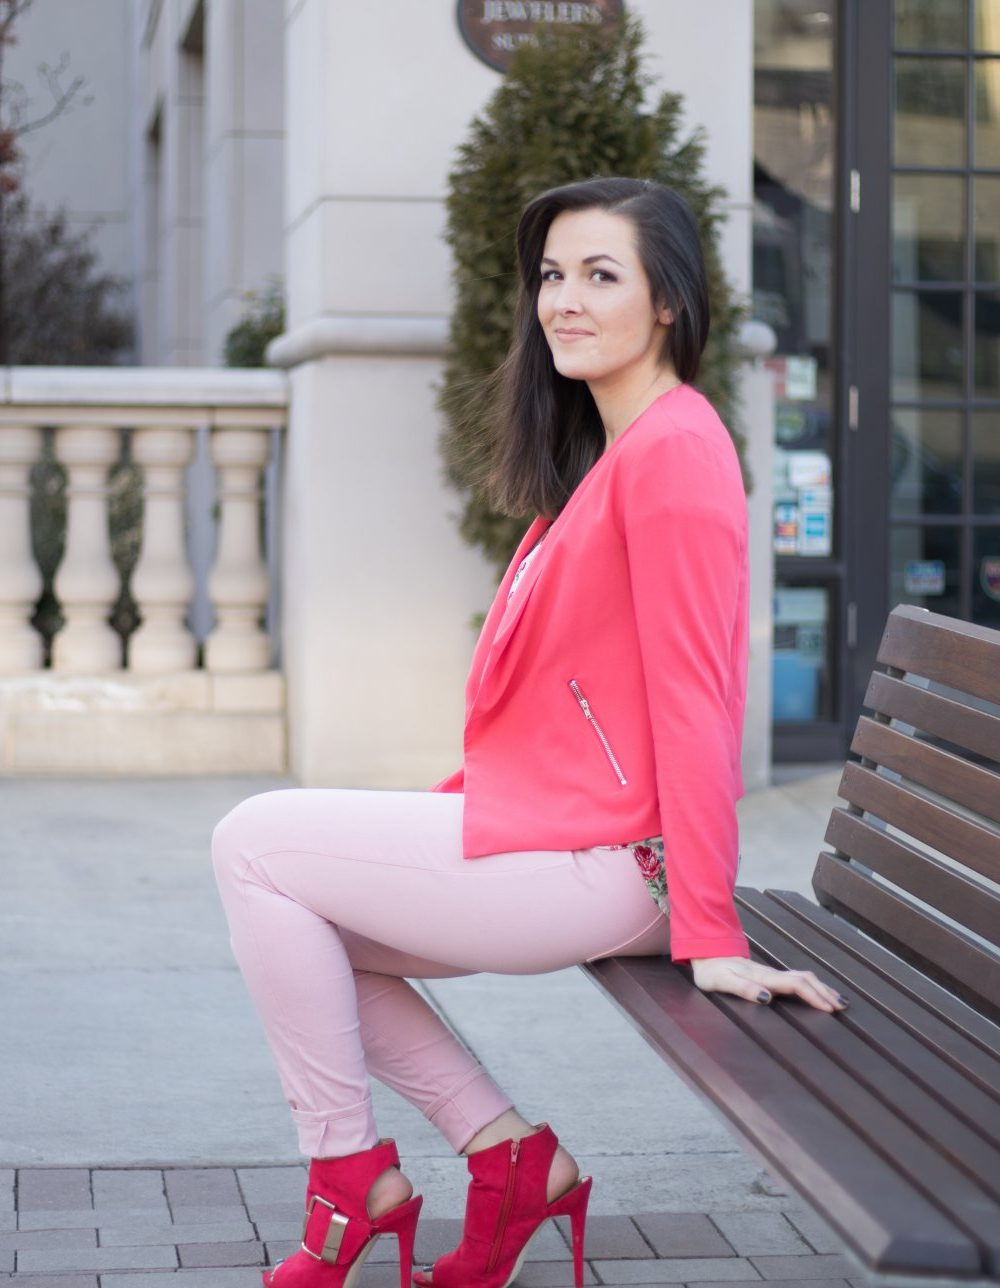 pink valentines day look | Valentines Outfit | Vday Look | Pink Blazer | Pretty In Pink | Date Night Outfit | Cute Valentines Day Look